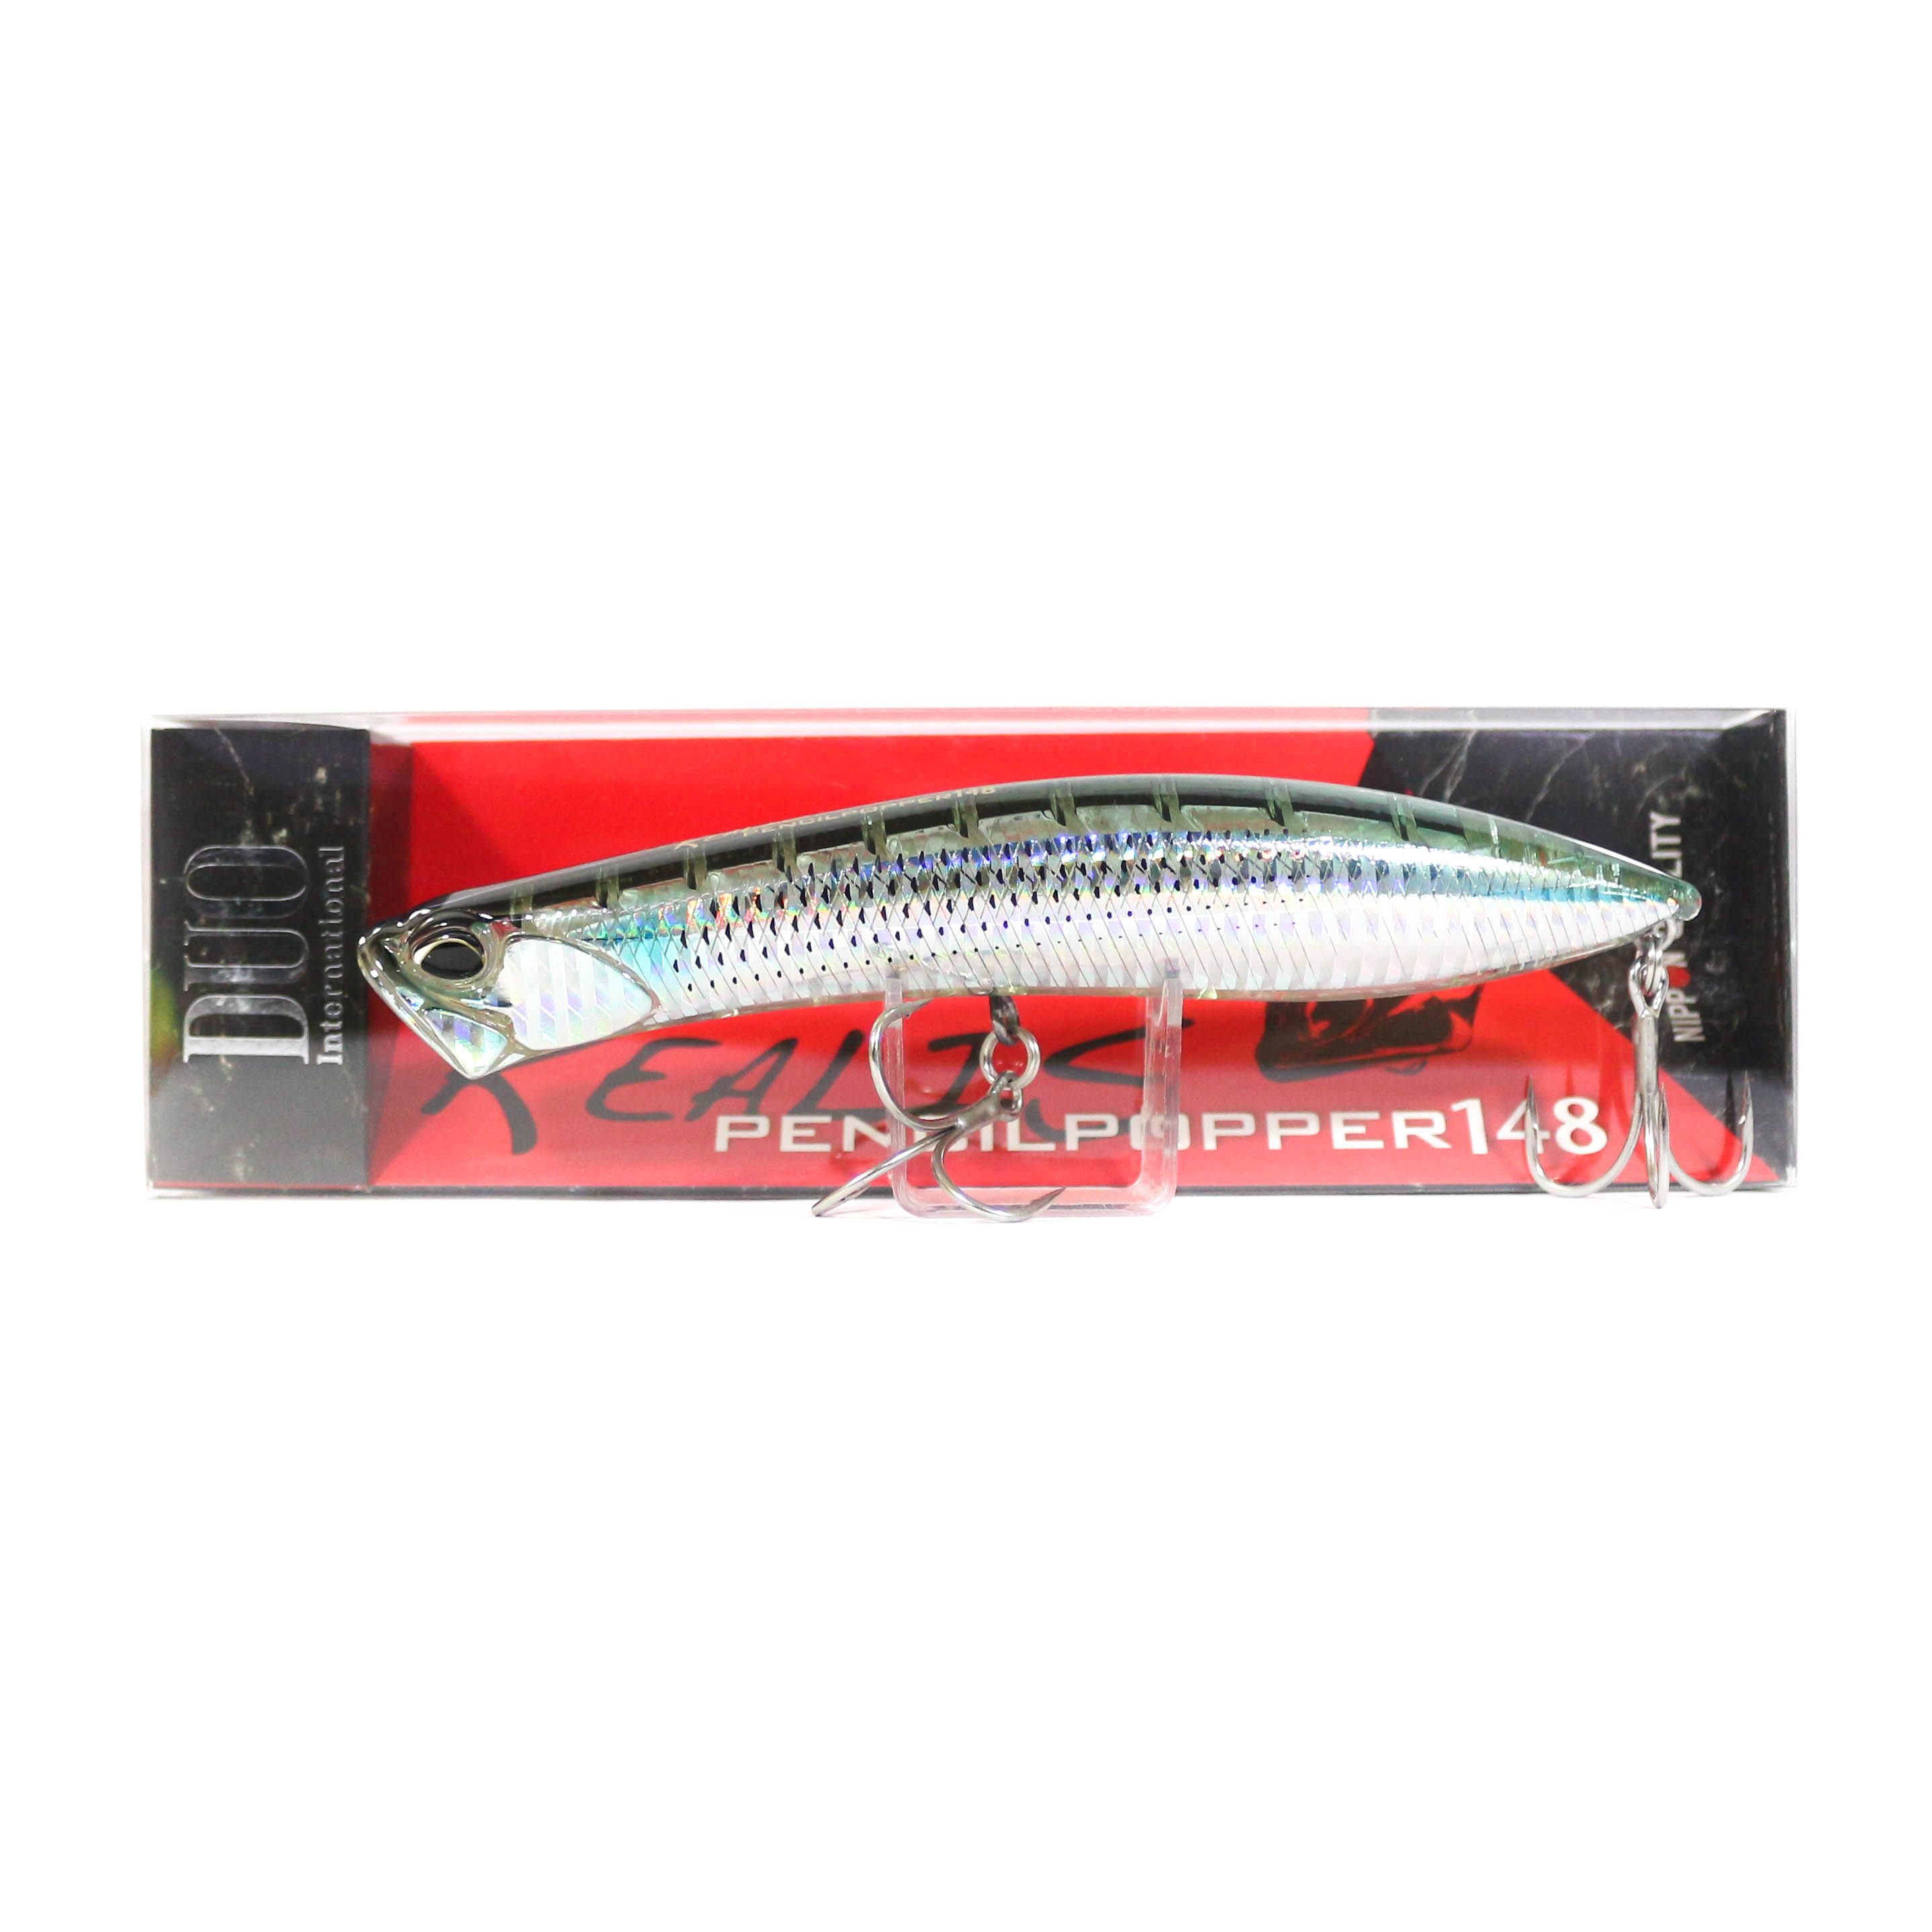 Sale Duo Realis Pencil Popper 148 SW Topwater Floating Lure GHN0193 (3473)